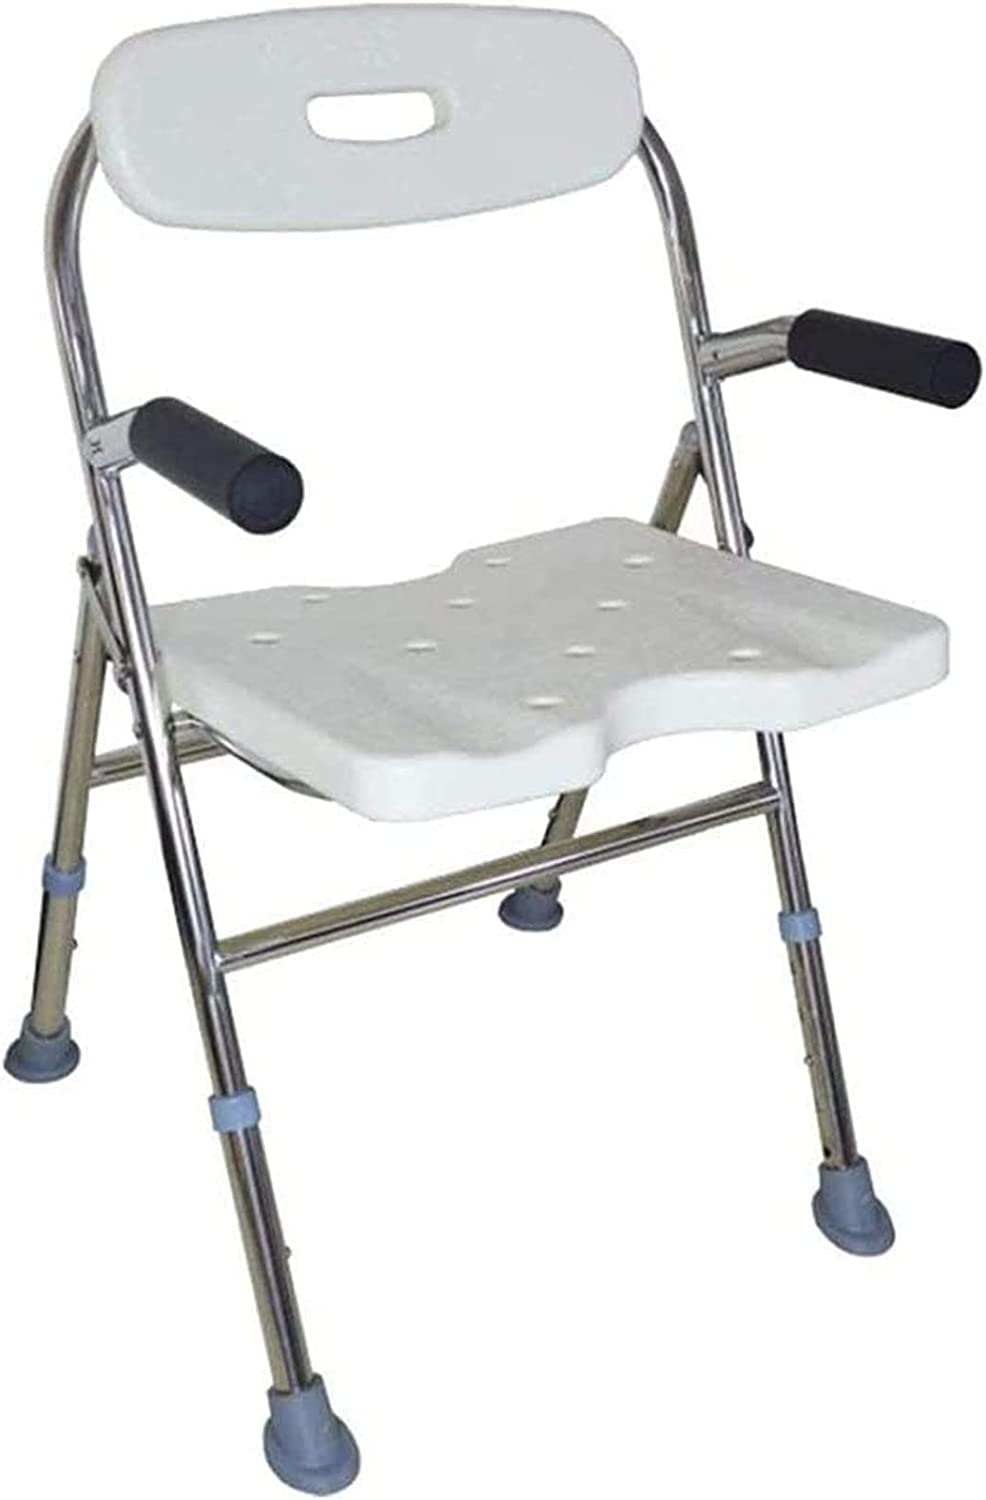 Medical Padded Seat Max 46% OFF Transfer Outlet SALE Bench Ba with Folding Chair Shower